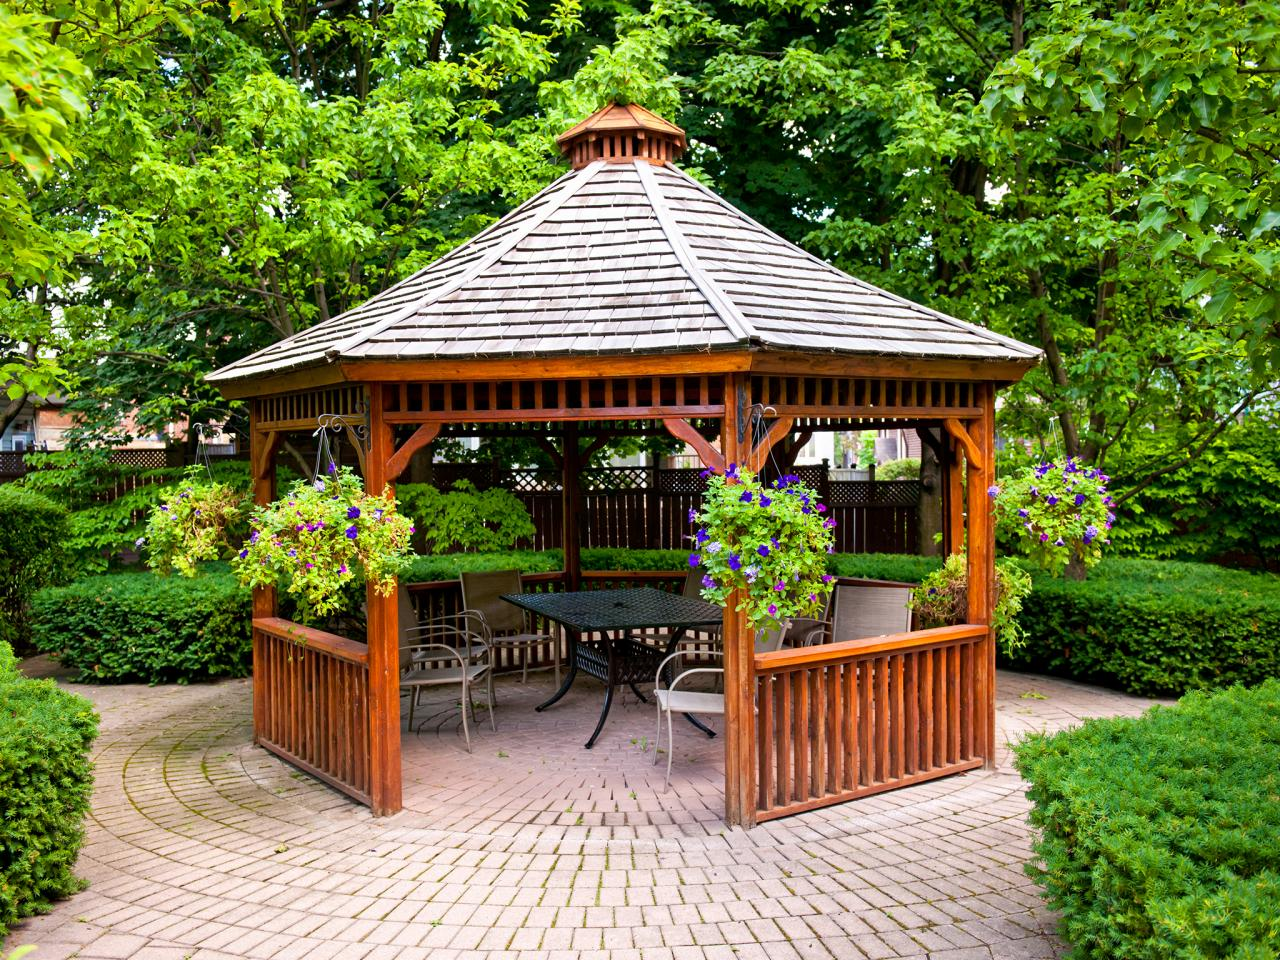 Patio Gazebos  Hgtv. How To Build A Patio For Cheap. Outdoor Furniture Outlet Fort Myers. Patio Furniture In Encino Ca. Patio Furniture Repair Los Angeles Ca. Hardwood Patio Table And Chairs. Patio Furniture With Propane Fire Pit. Luxury Patio Furniture Orange County. Patio Furniture Mid Century Modern